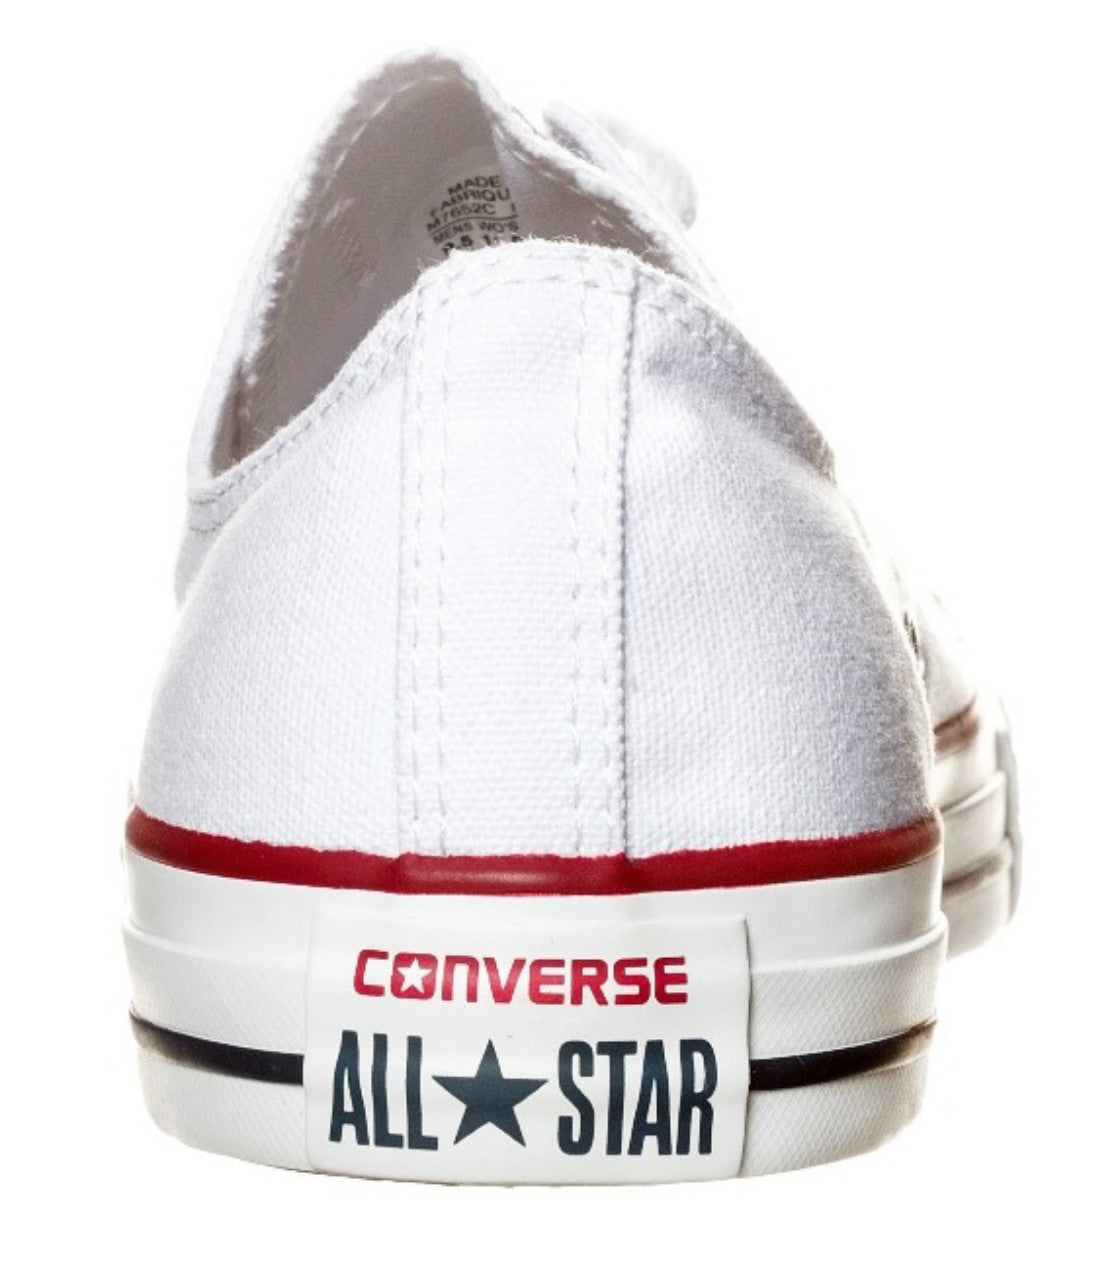 5b5527f41298 ... Converse Classic Chuck Taylor White Low Tops Trainer Sneaker All Star  OX NEW sizes Shoes